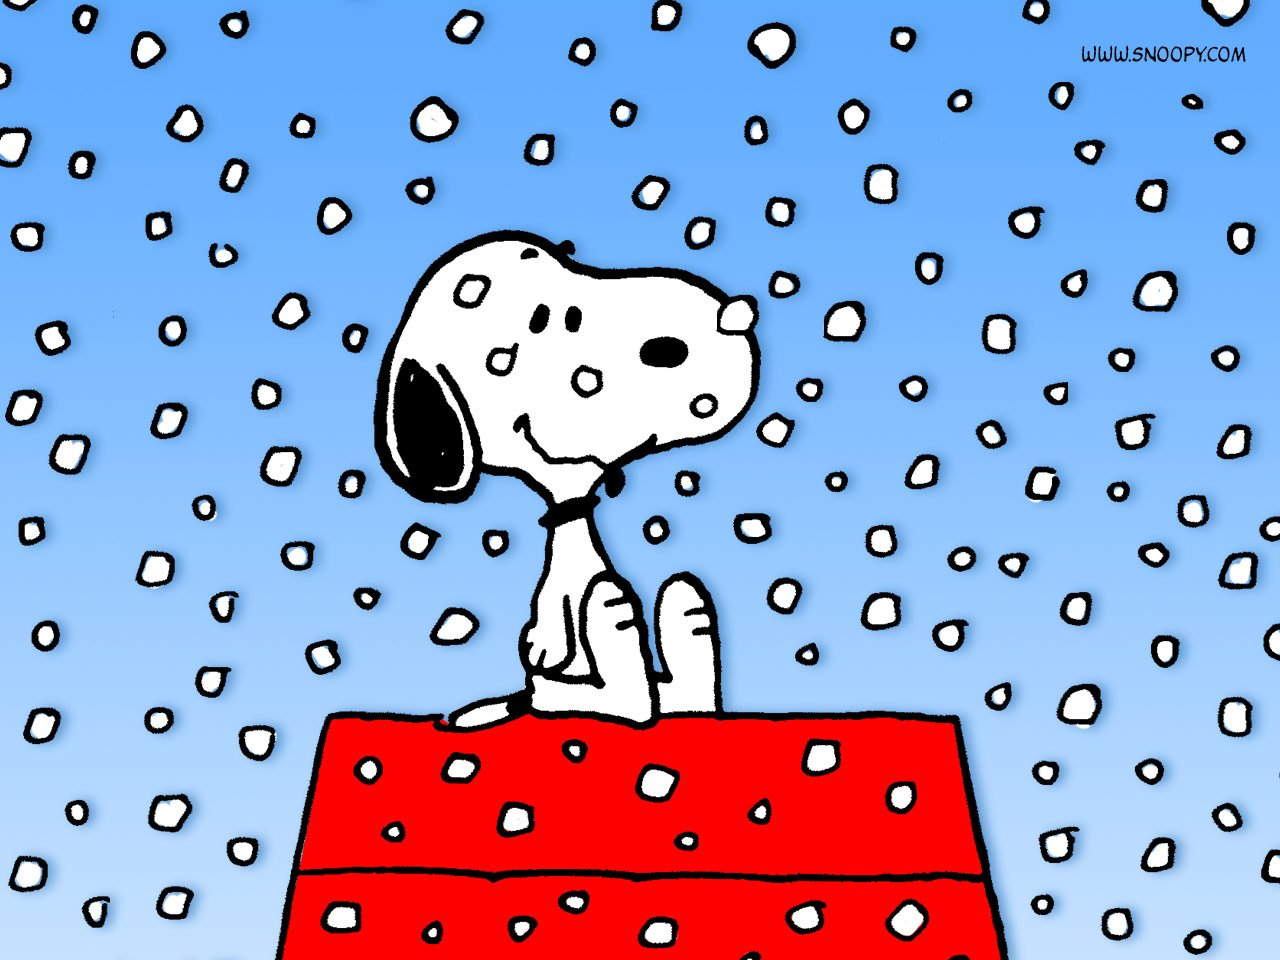 Snoopy Wallpaper   HD Wallpapers Lovely 1280x960